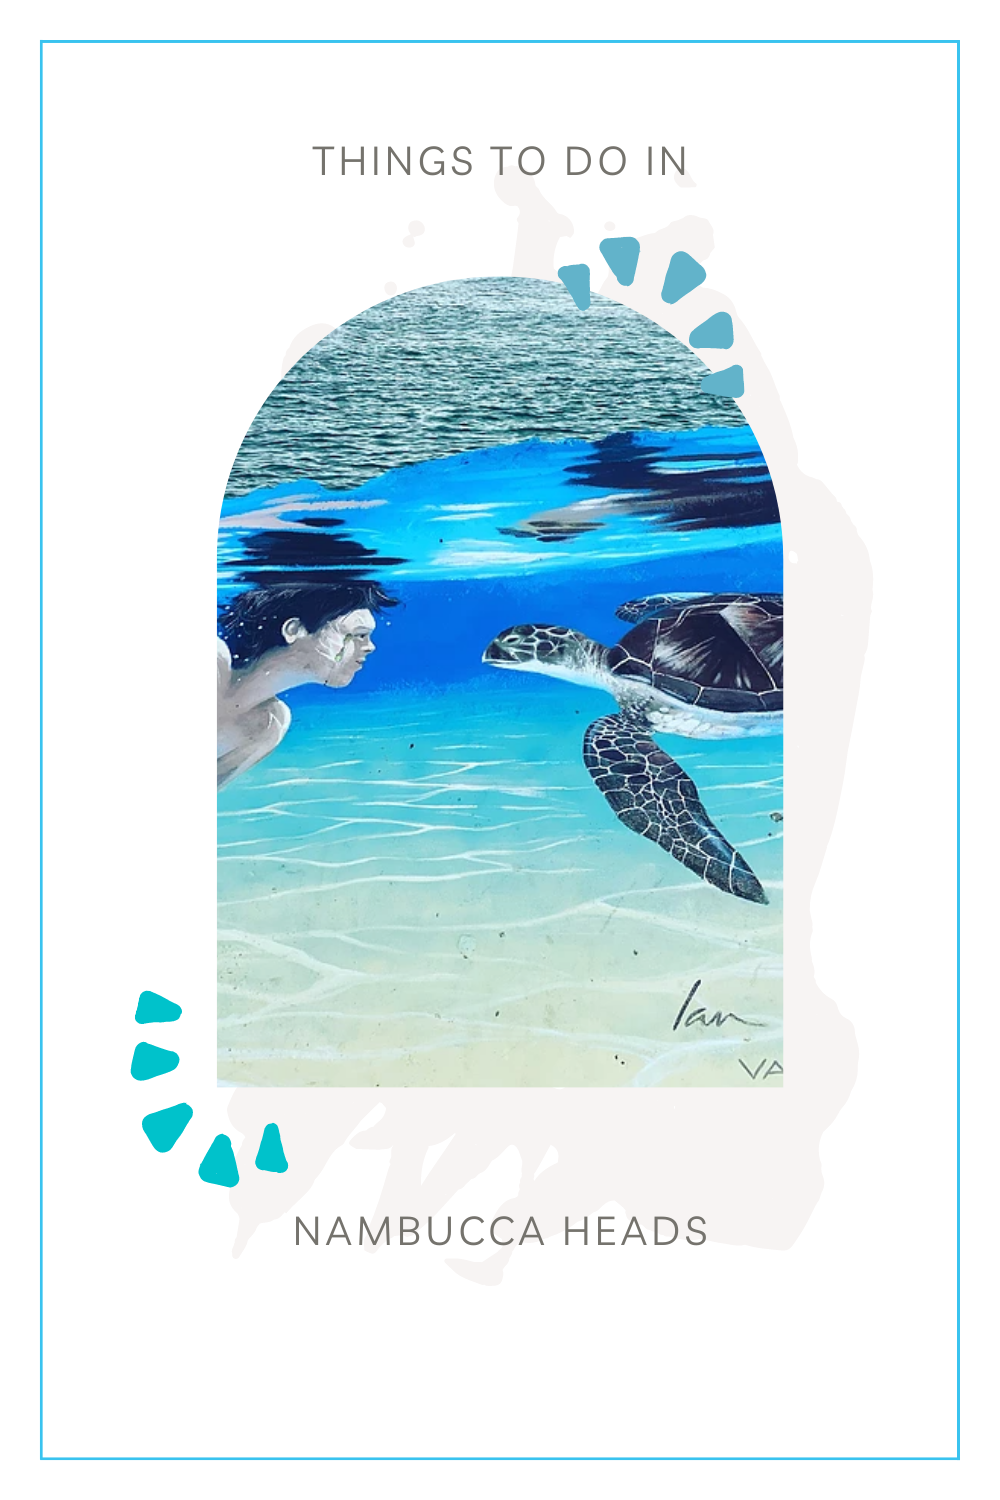 Things to do in Nambucca Heads